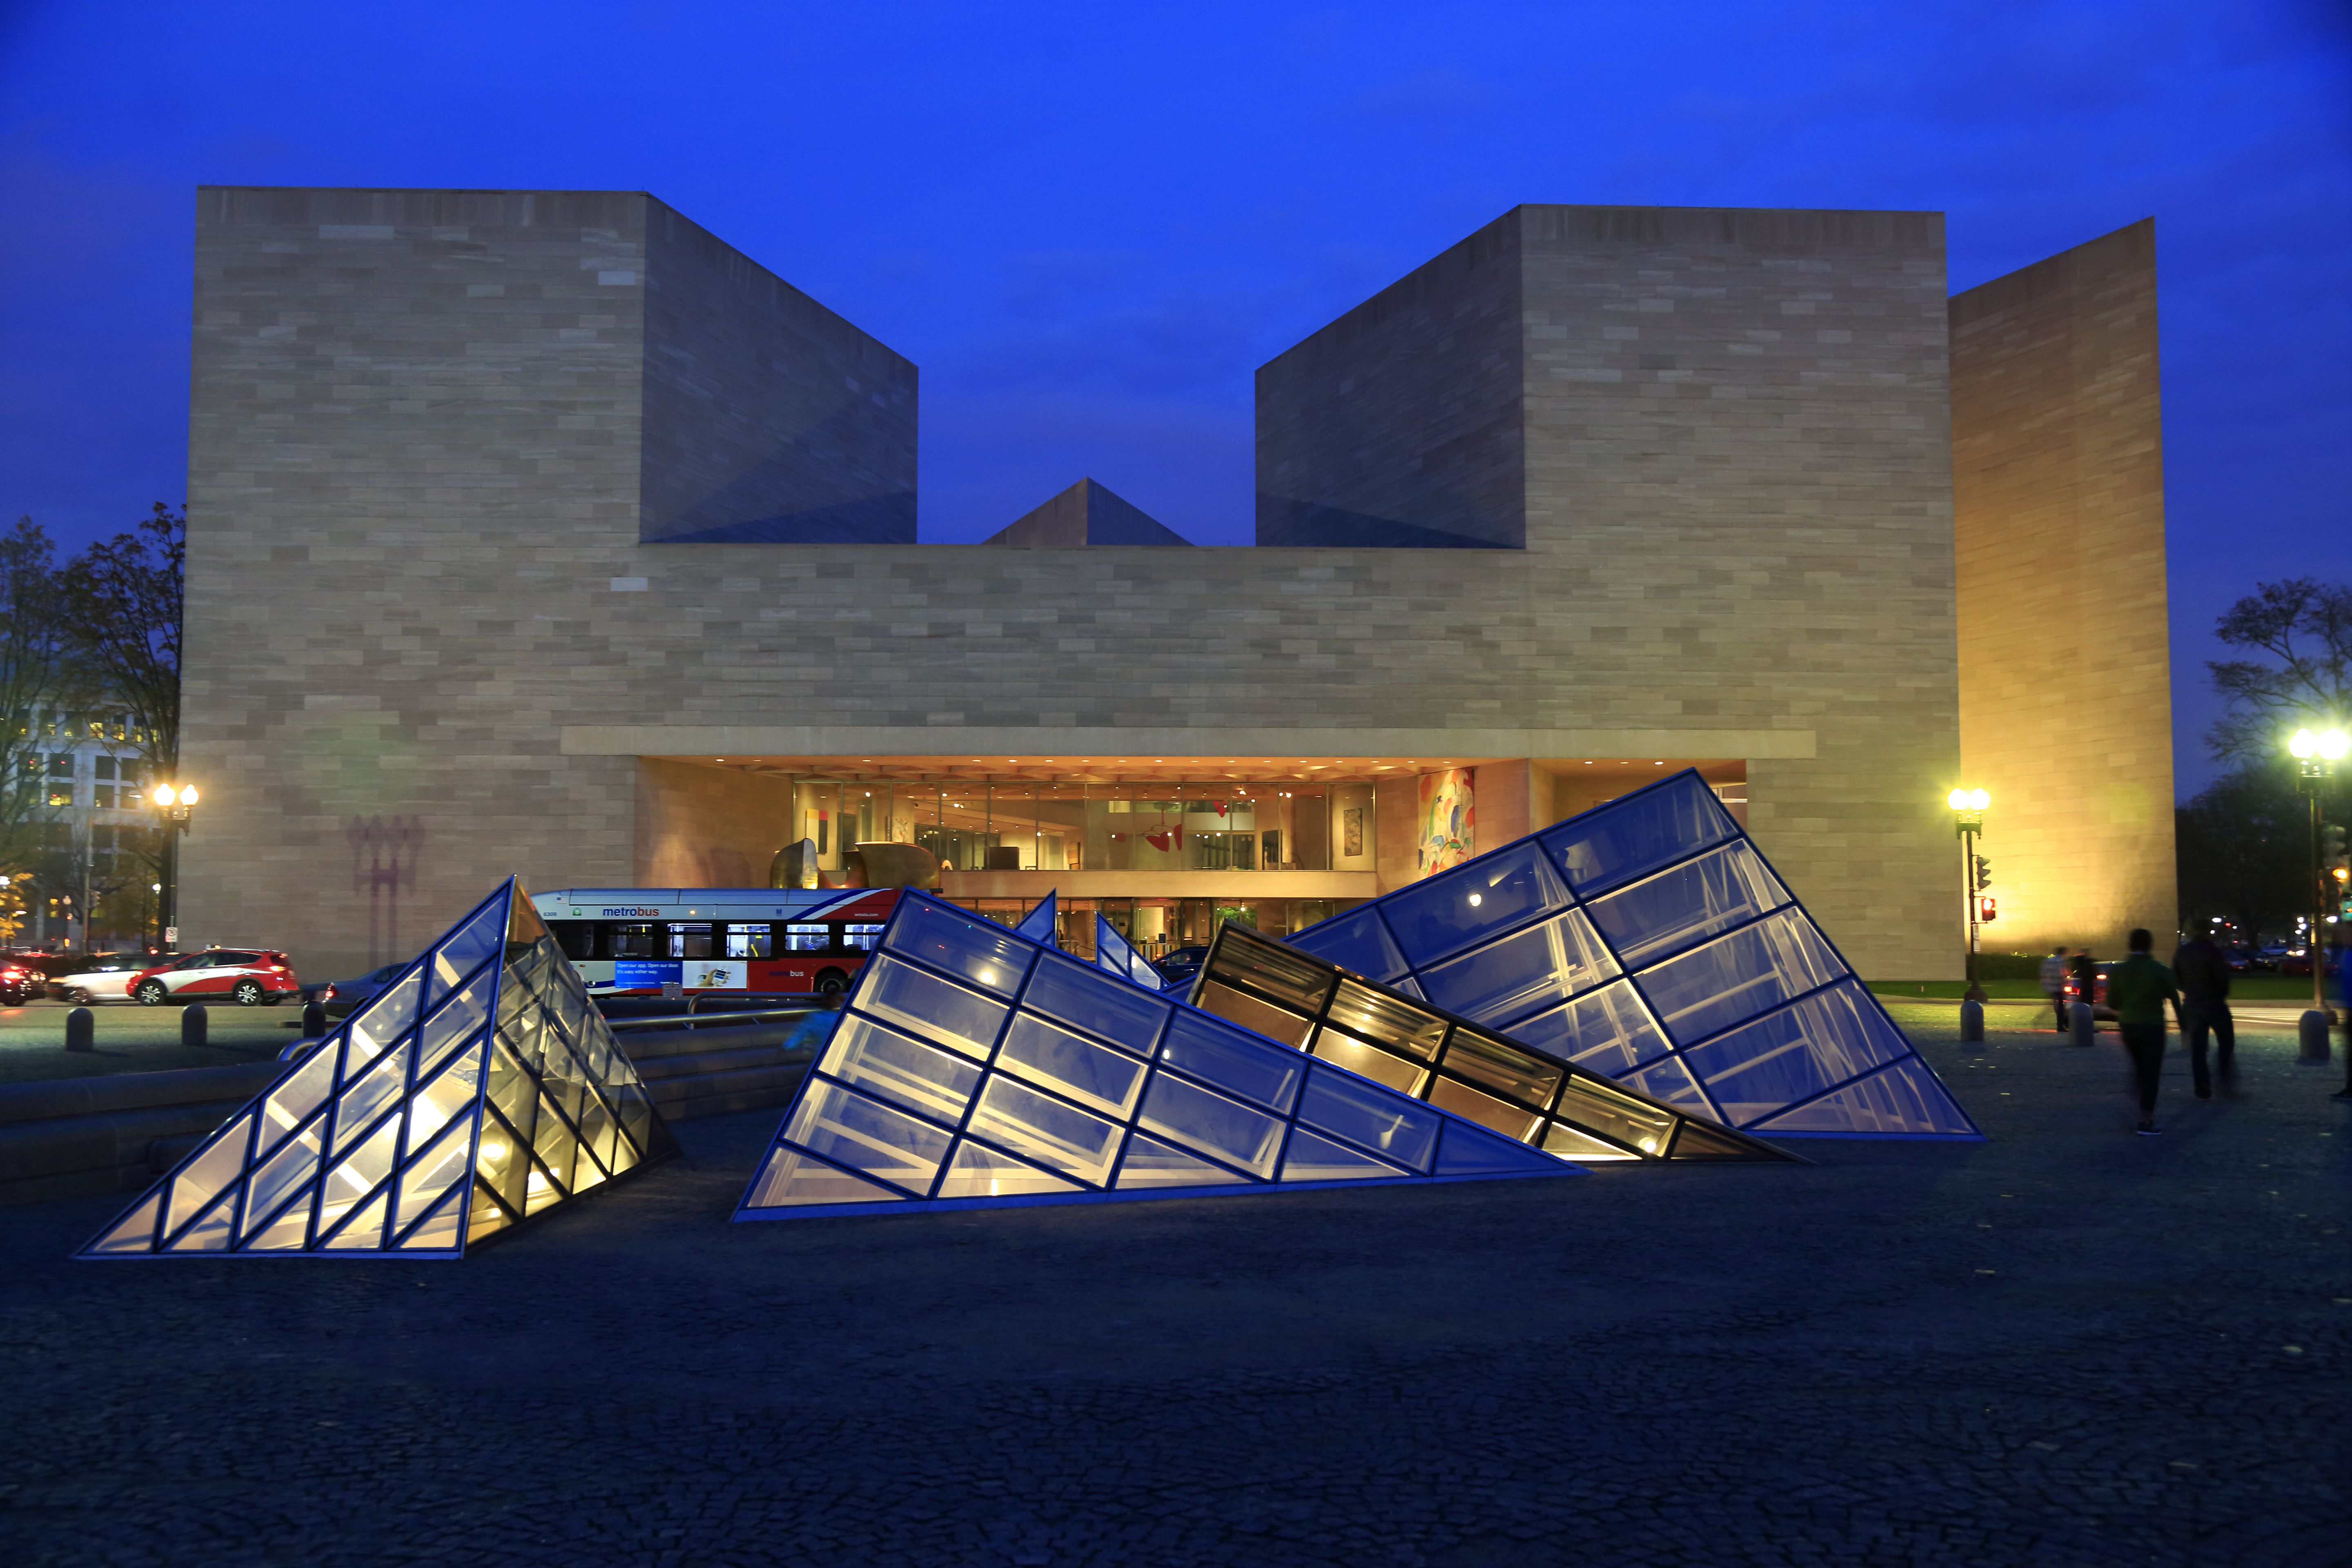 Top 10 Art Museums in the USA